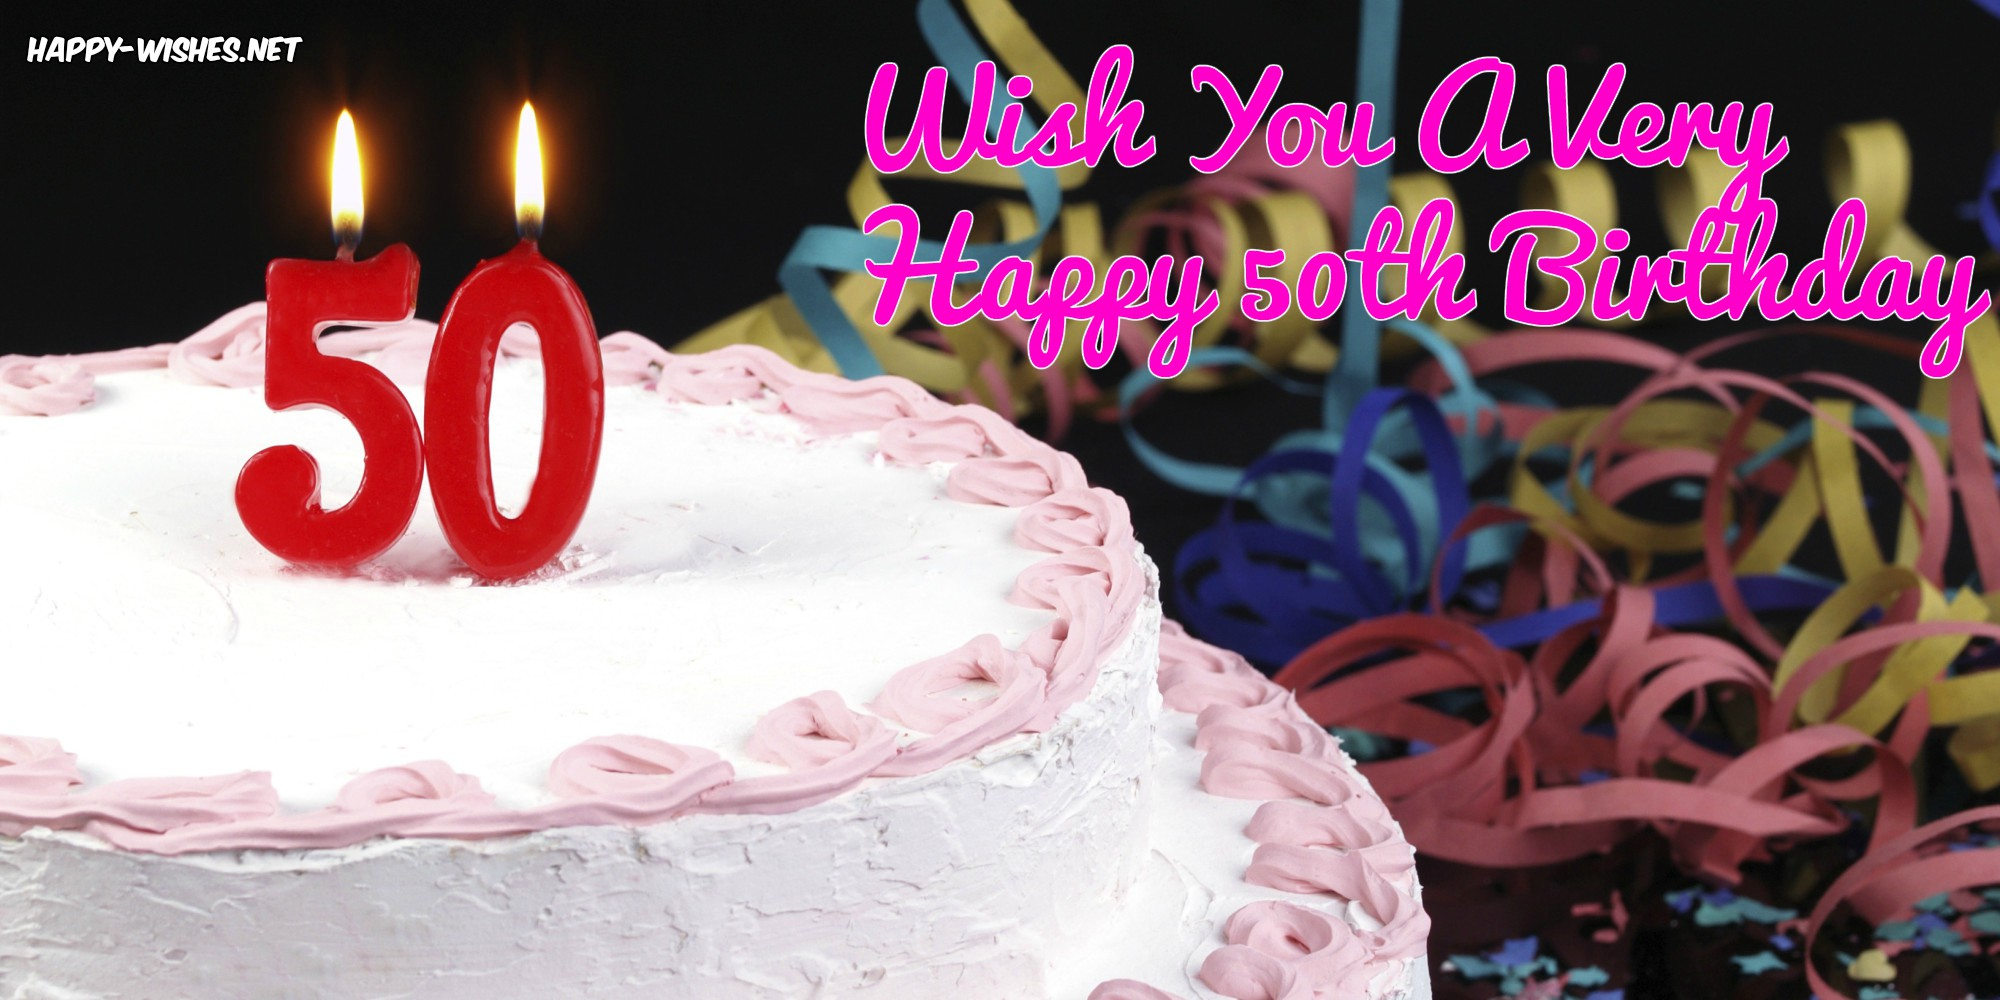 Marvelous Happy 50Th Birthday Wishes Quotes Images Personalised Birthday Cards Veneteletsinfo